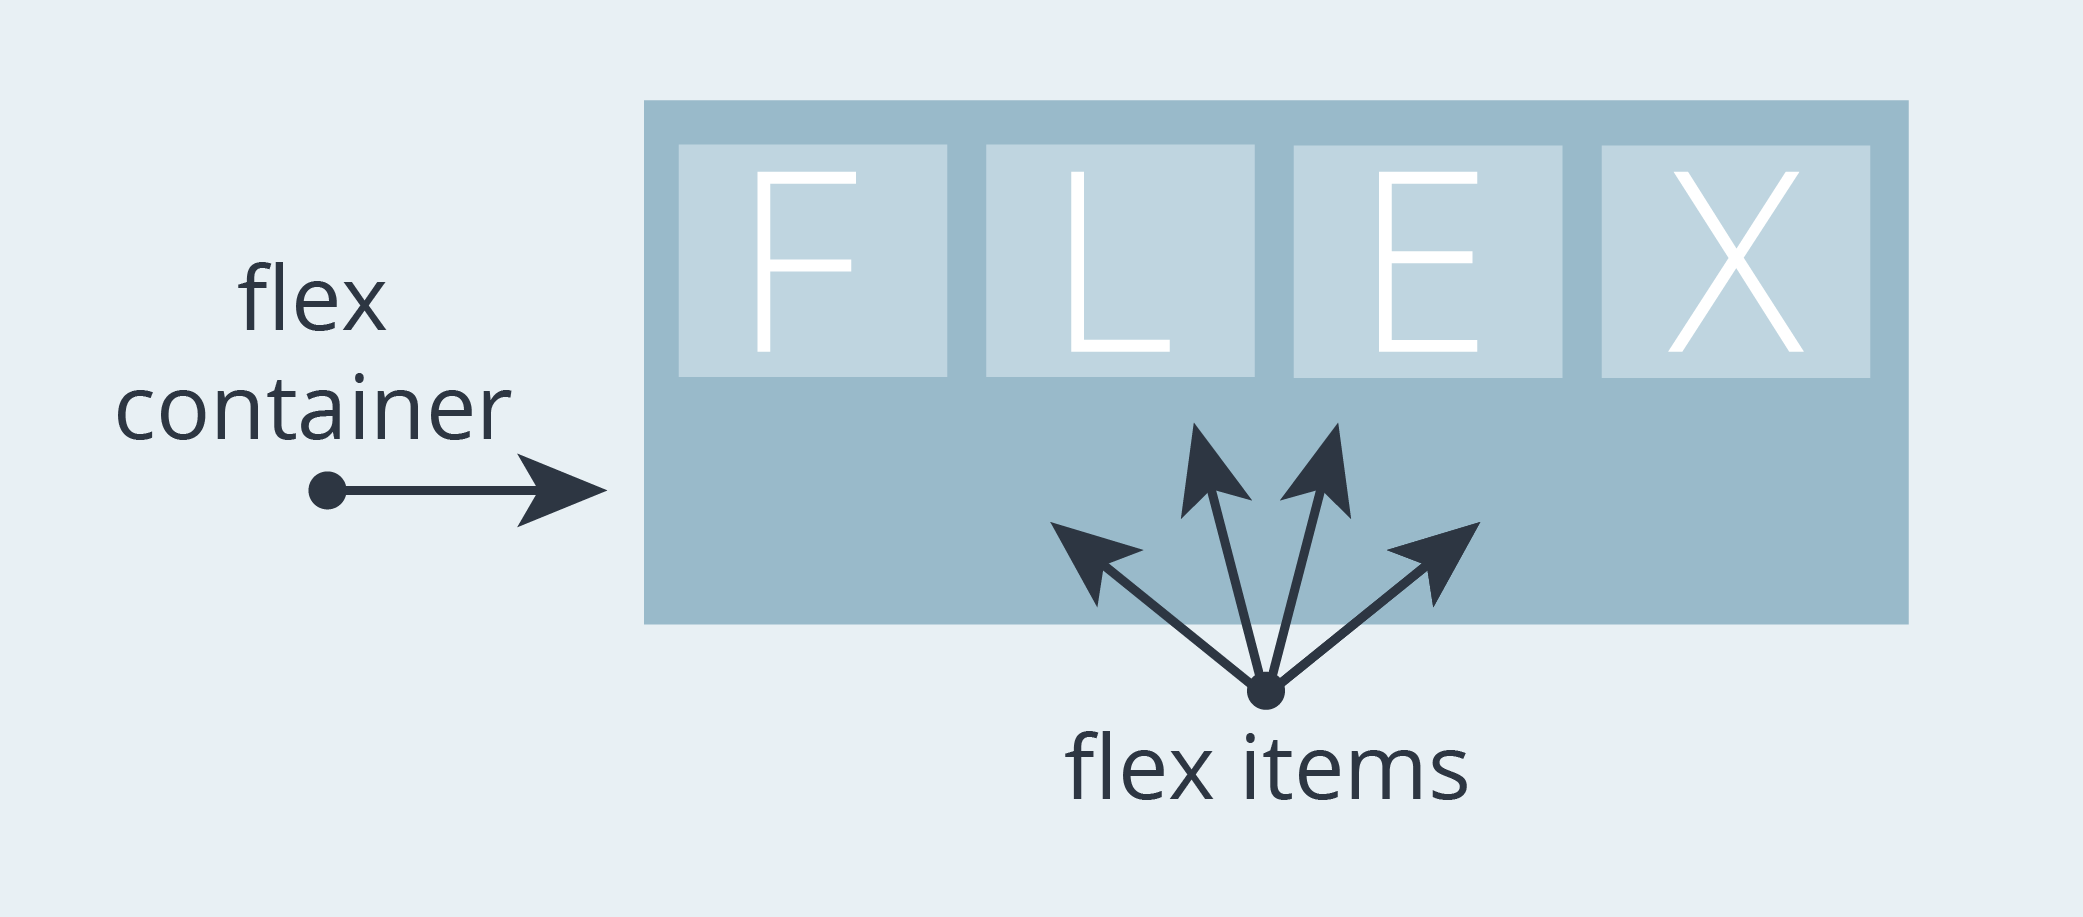 Illustration demonstrating what is considered a flex container and flex item